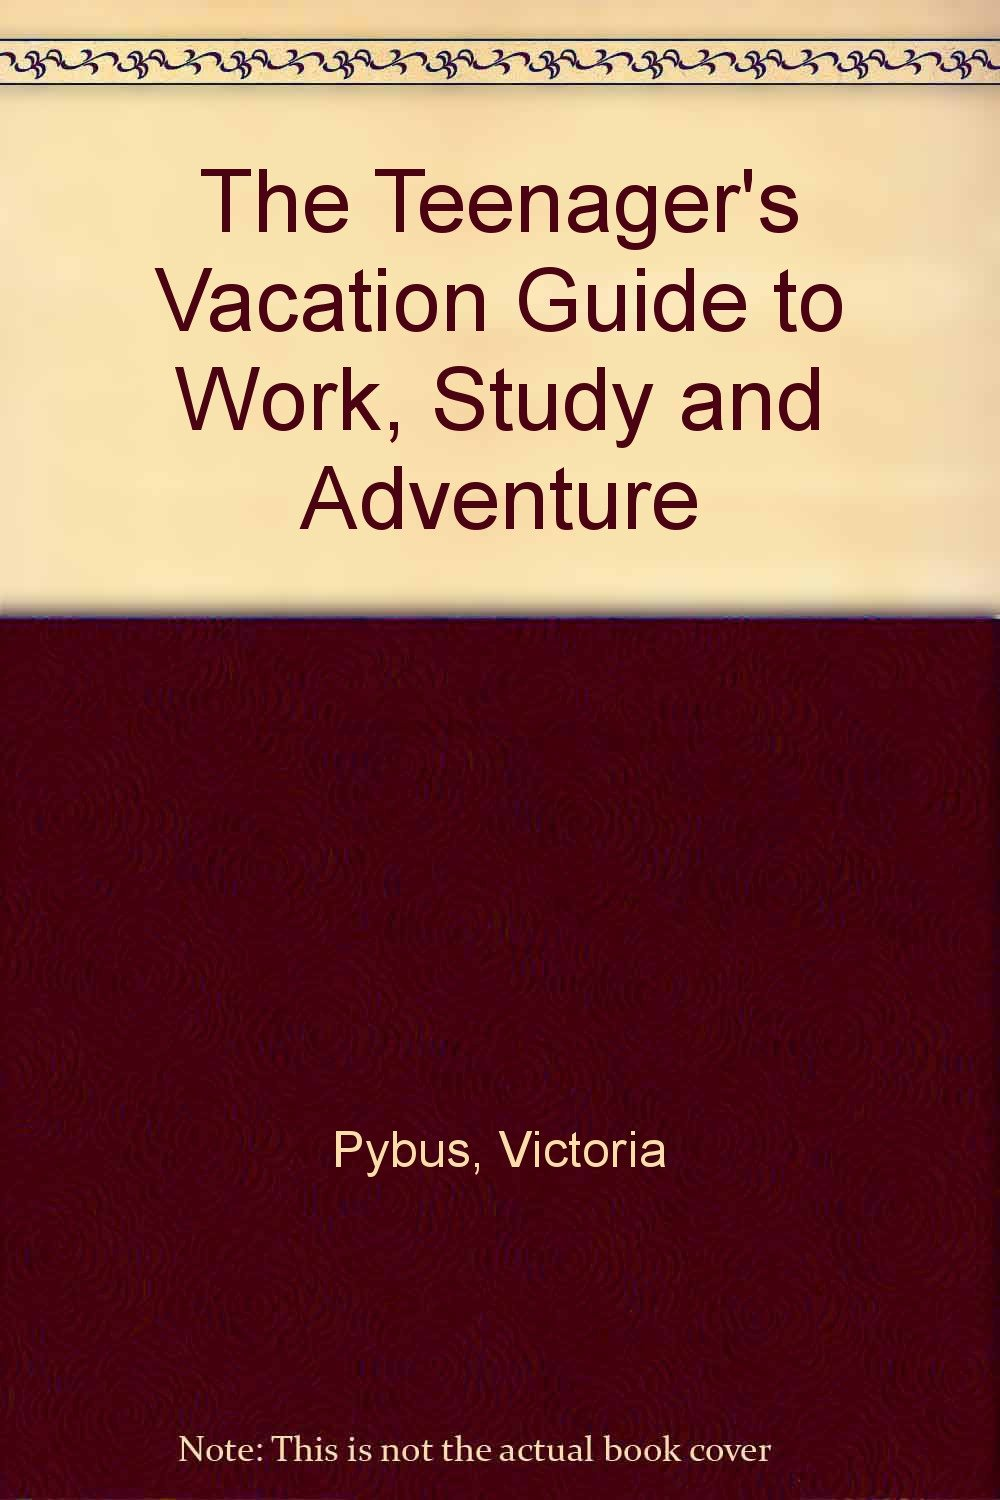 Teenager's Vacation Guide to Work, Study and Adventure